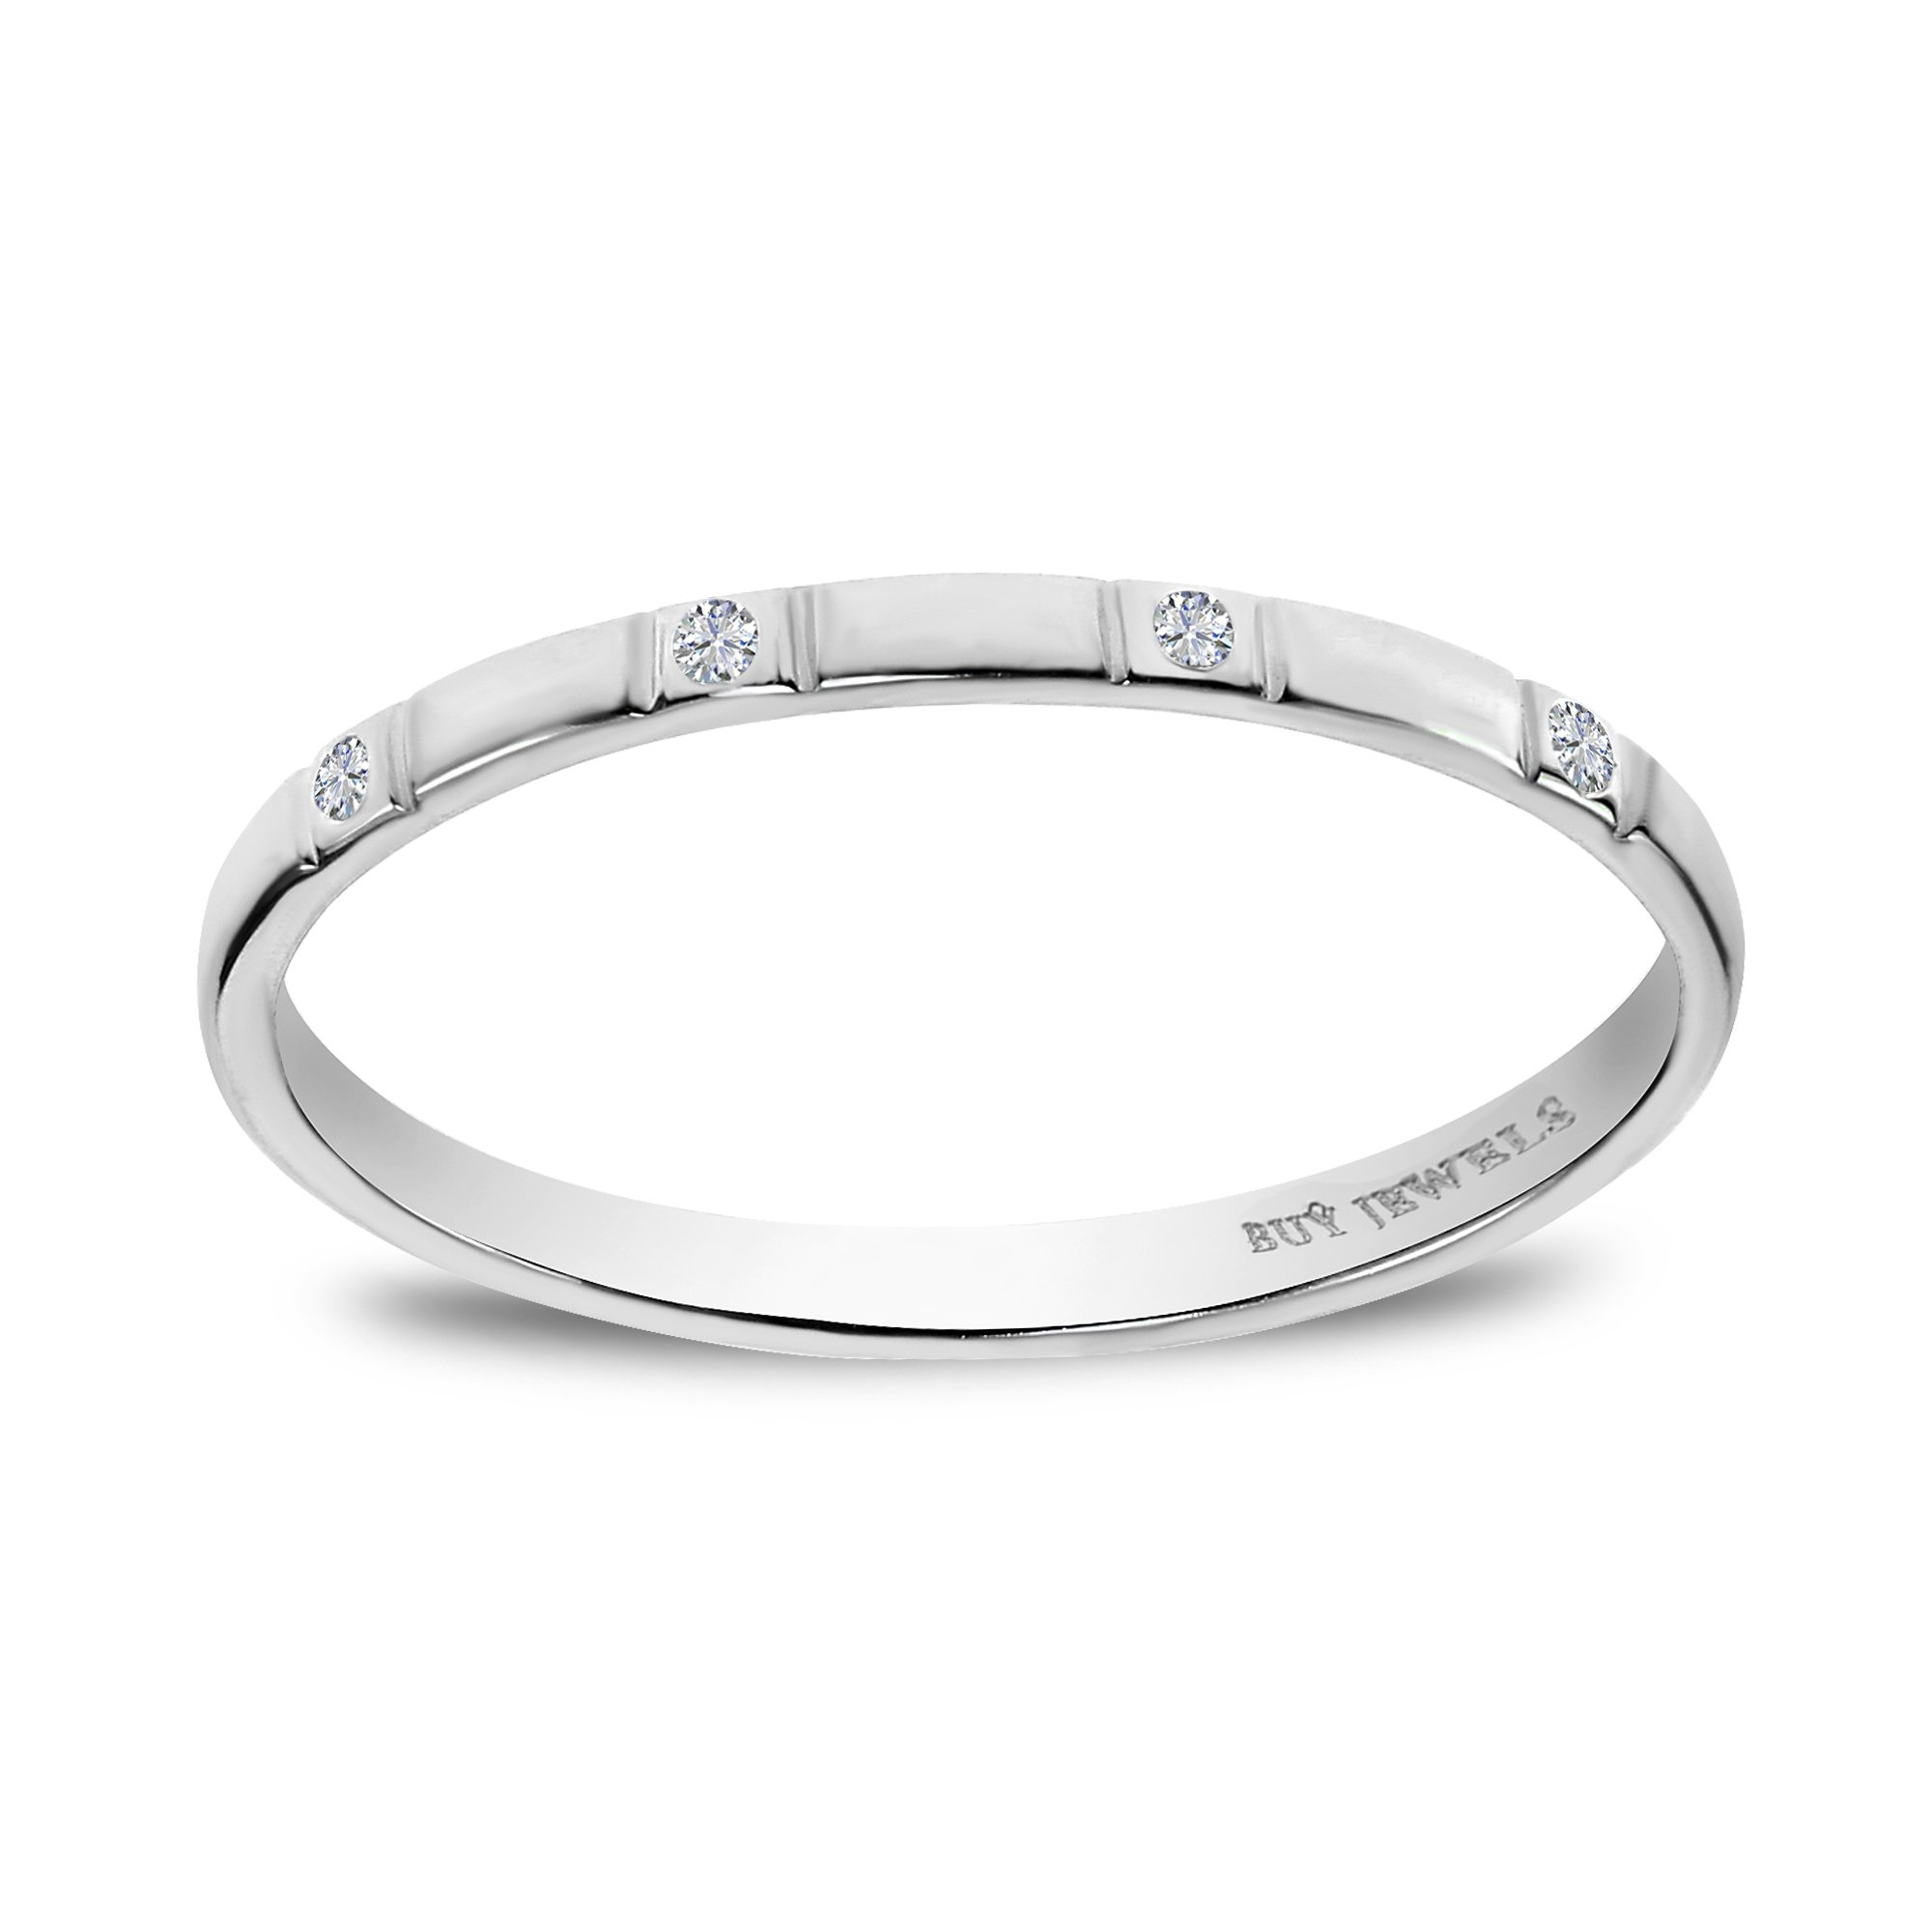 Buy Jewels 10k Gold and Diamond Stackable Dainty Promise Anniversary Ring for Women (white-gold, 4)